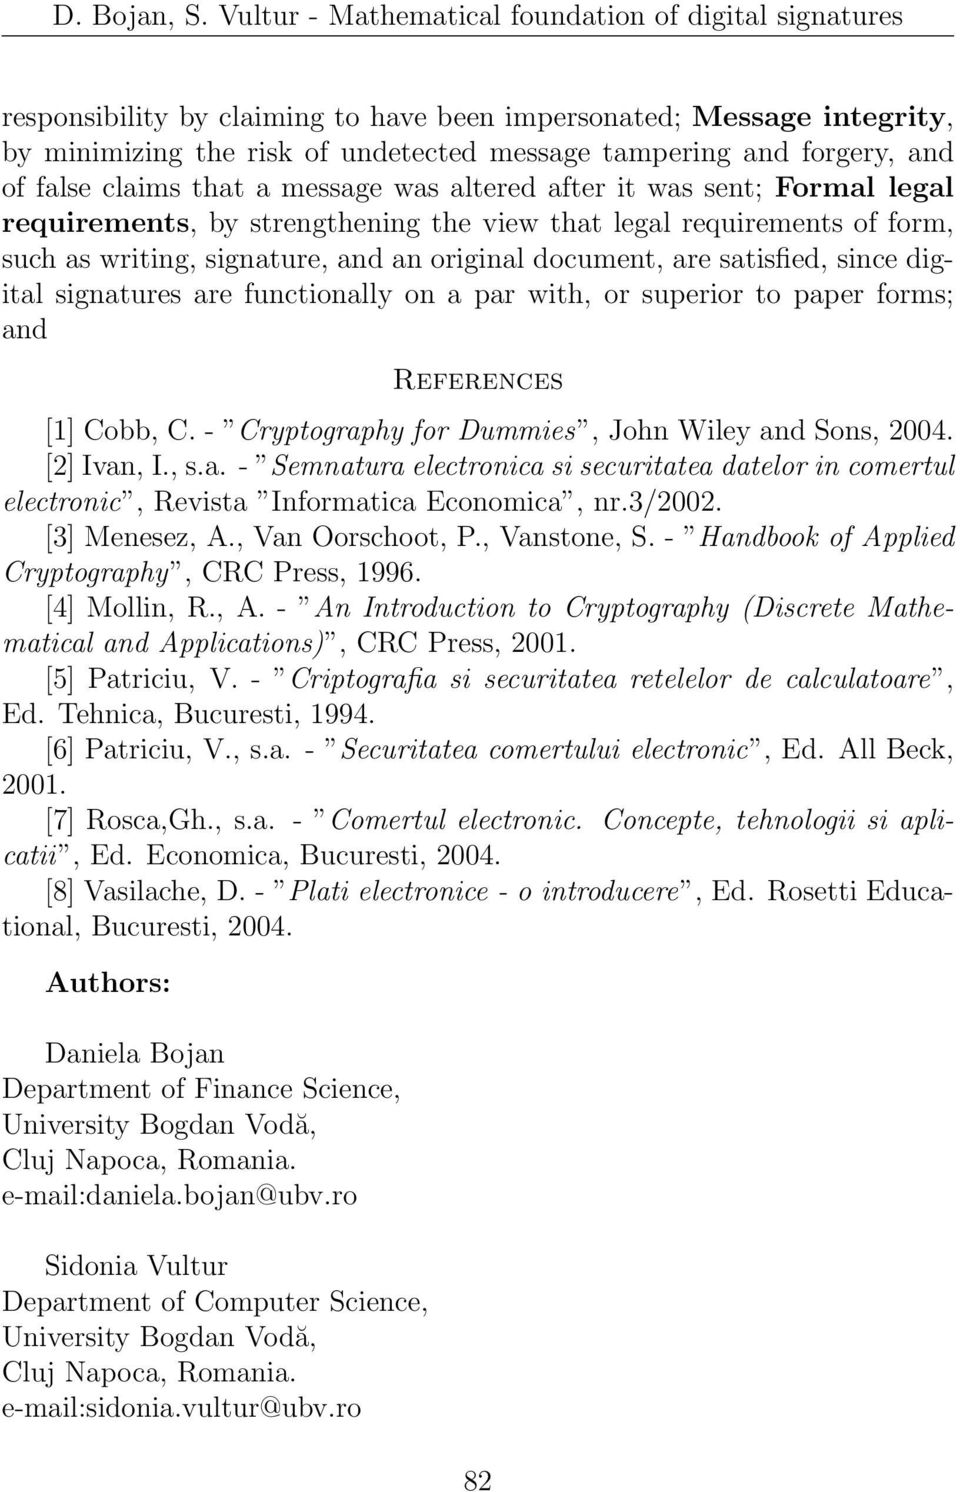 functionally on a par with, or superior to paper forms; and References [1] Cobb, C. - Cryptography for Dummies, John Wiley and Sons, 2004. [2] Ivan, I., s.a. - Semnatura electronica si securitatea datelor in comertul electronic, Revista Informatica Economica, nr.